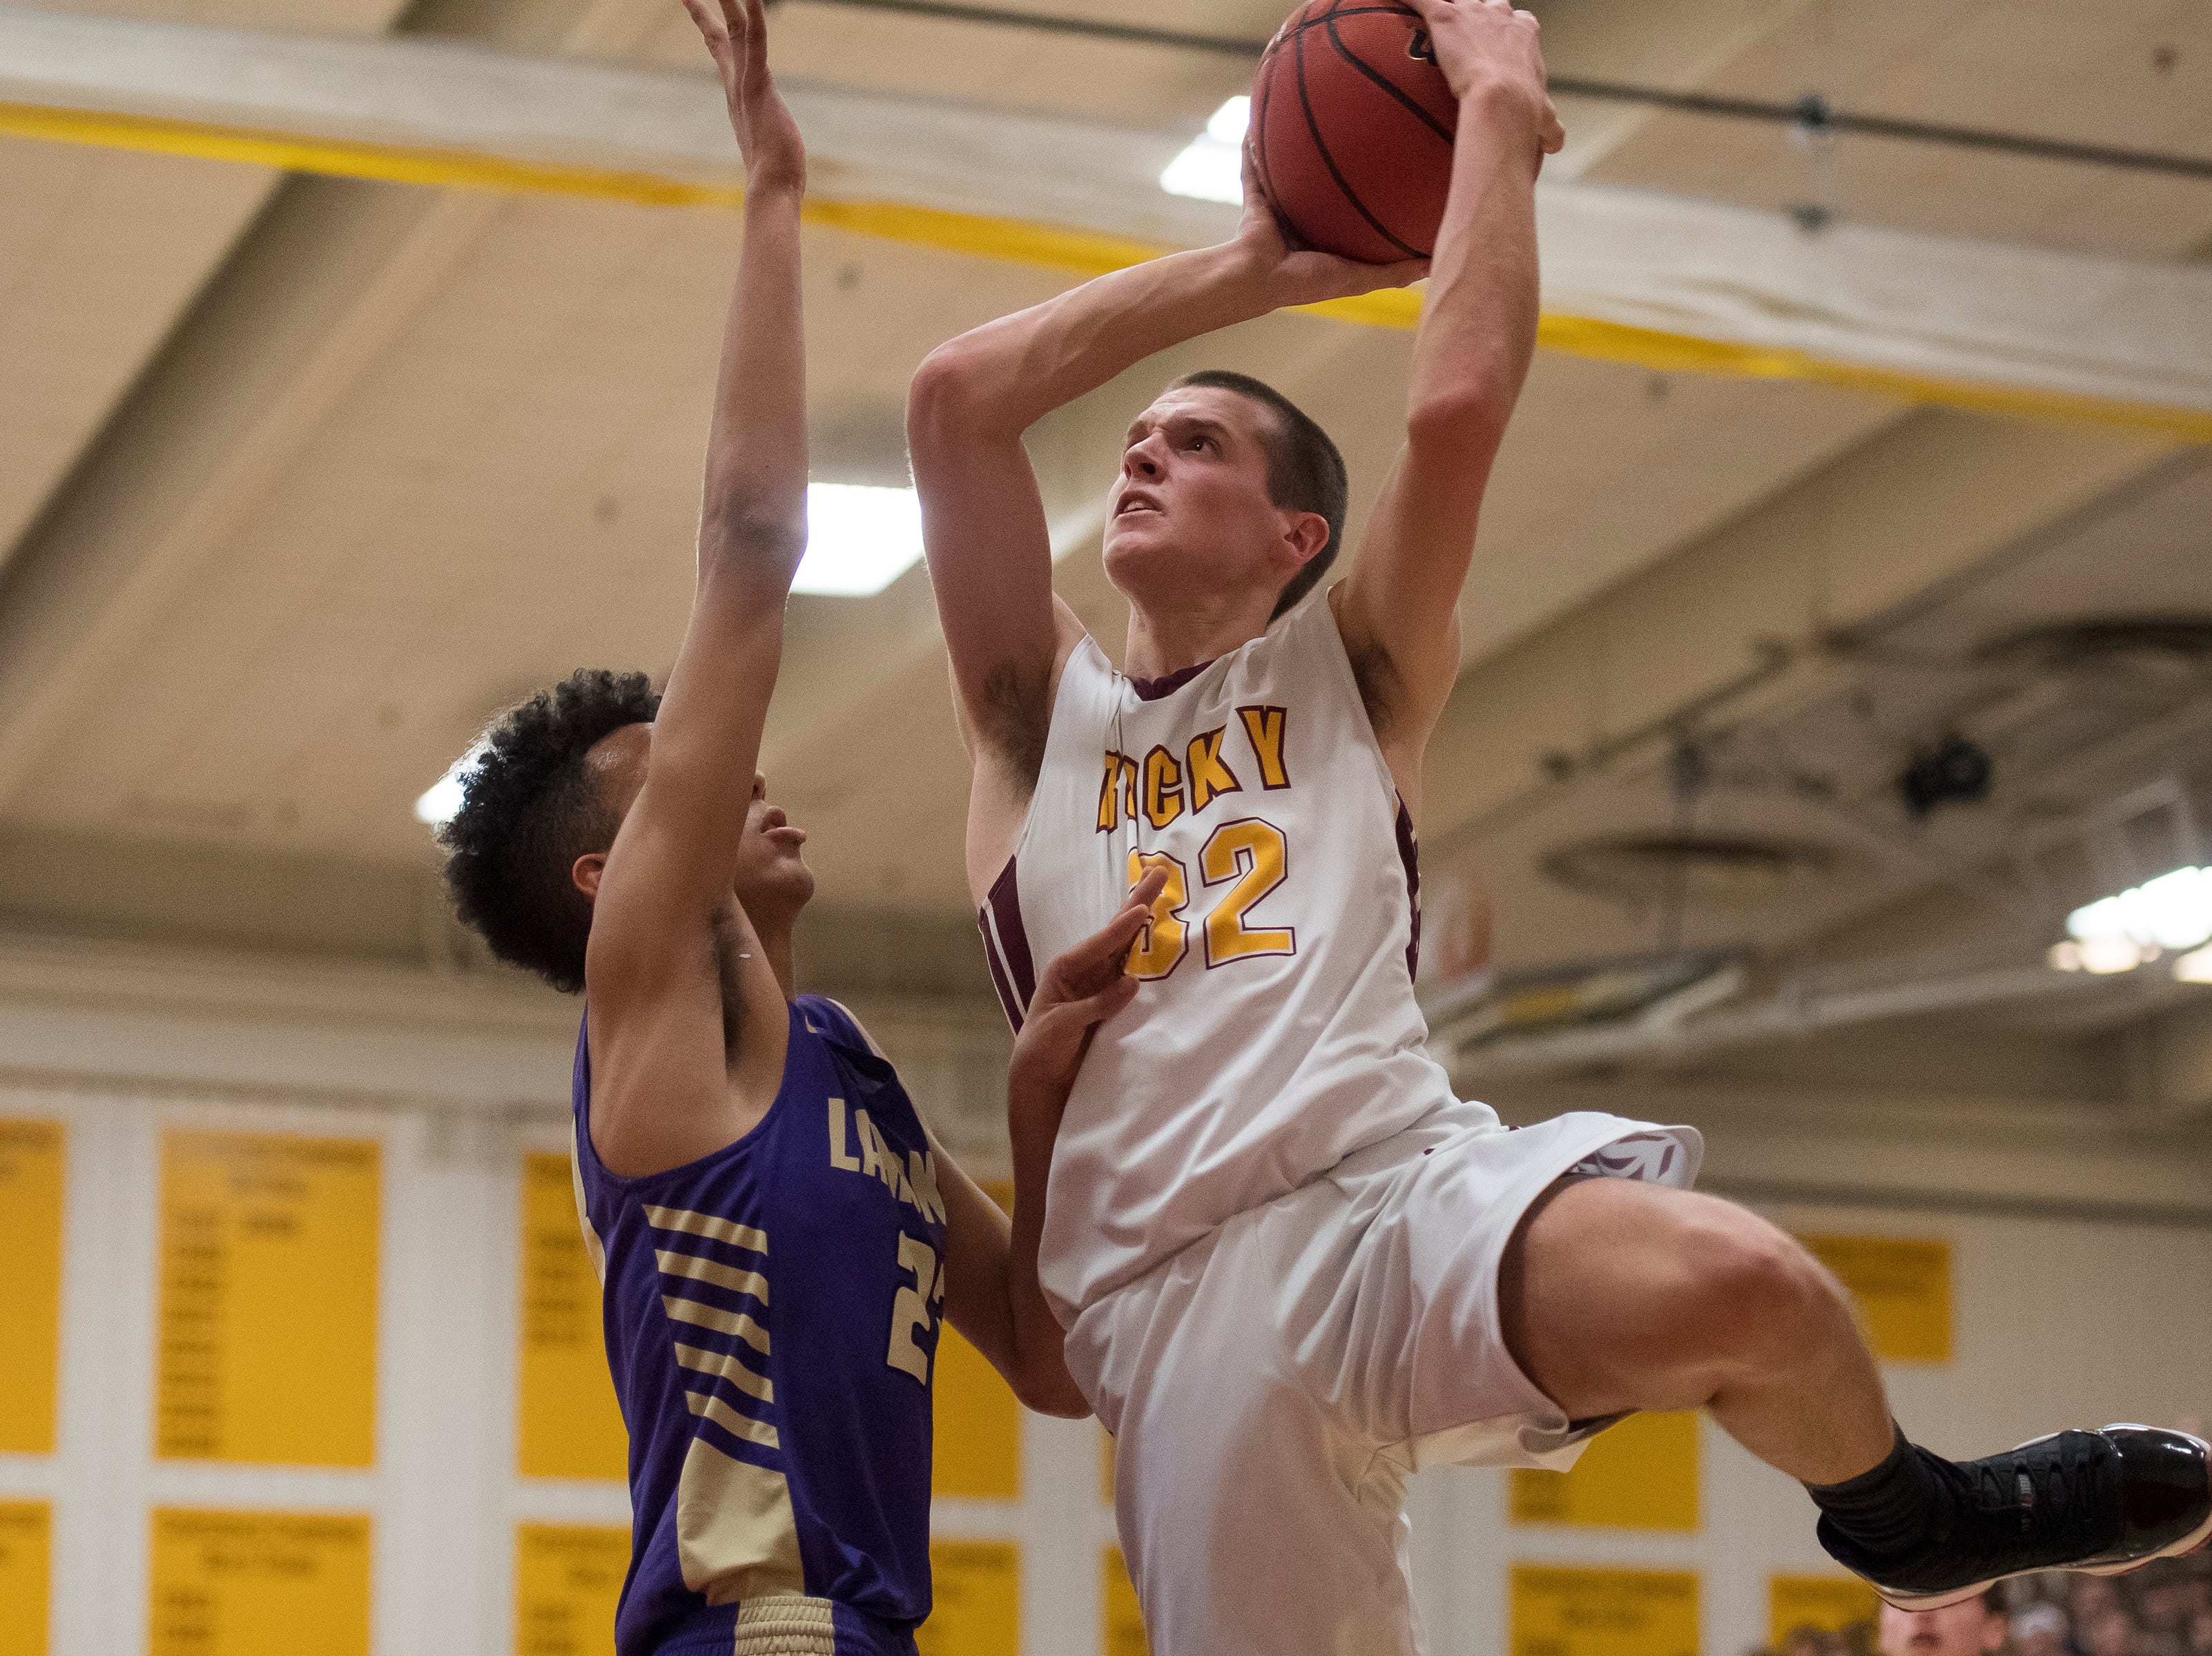 Rocky Mountain High School junior Kenan Schuler (32) puts a shot over Fort Collins High School sophomore Dante Smith (23) on Friday, Jan. 18, 2019, at Rocky Mountain High School in Fort Collins, Colo.